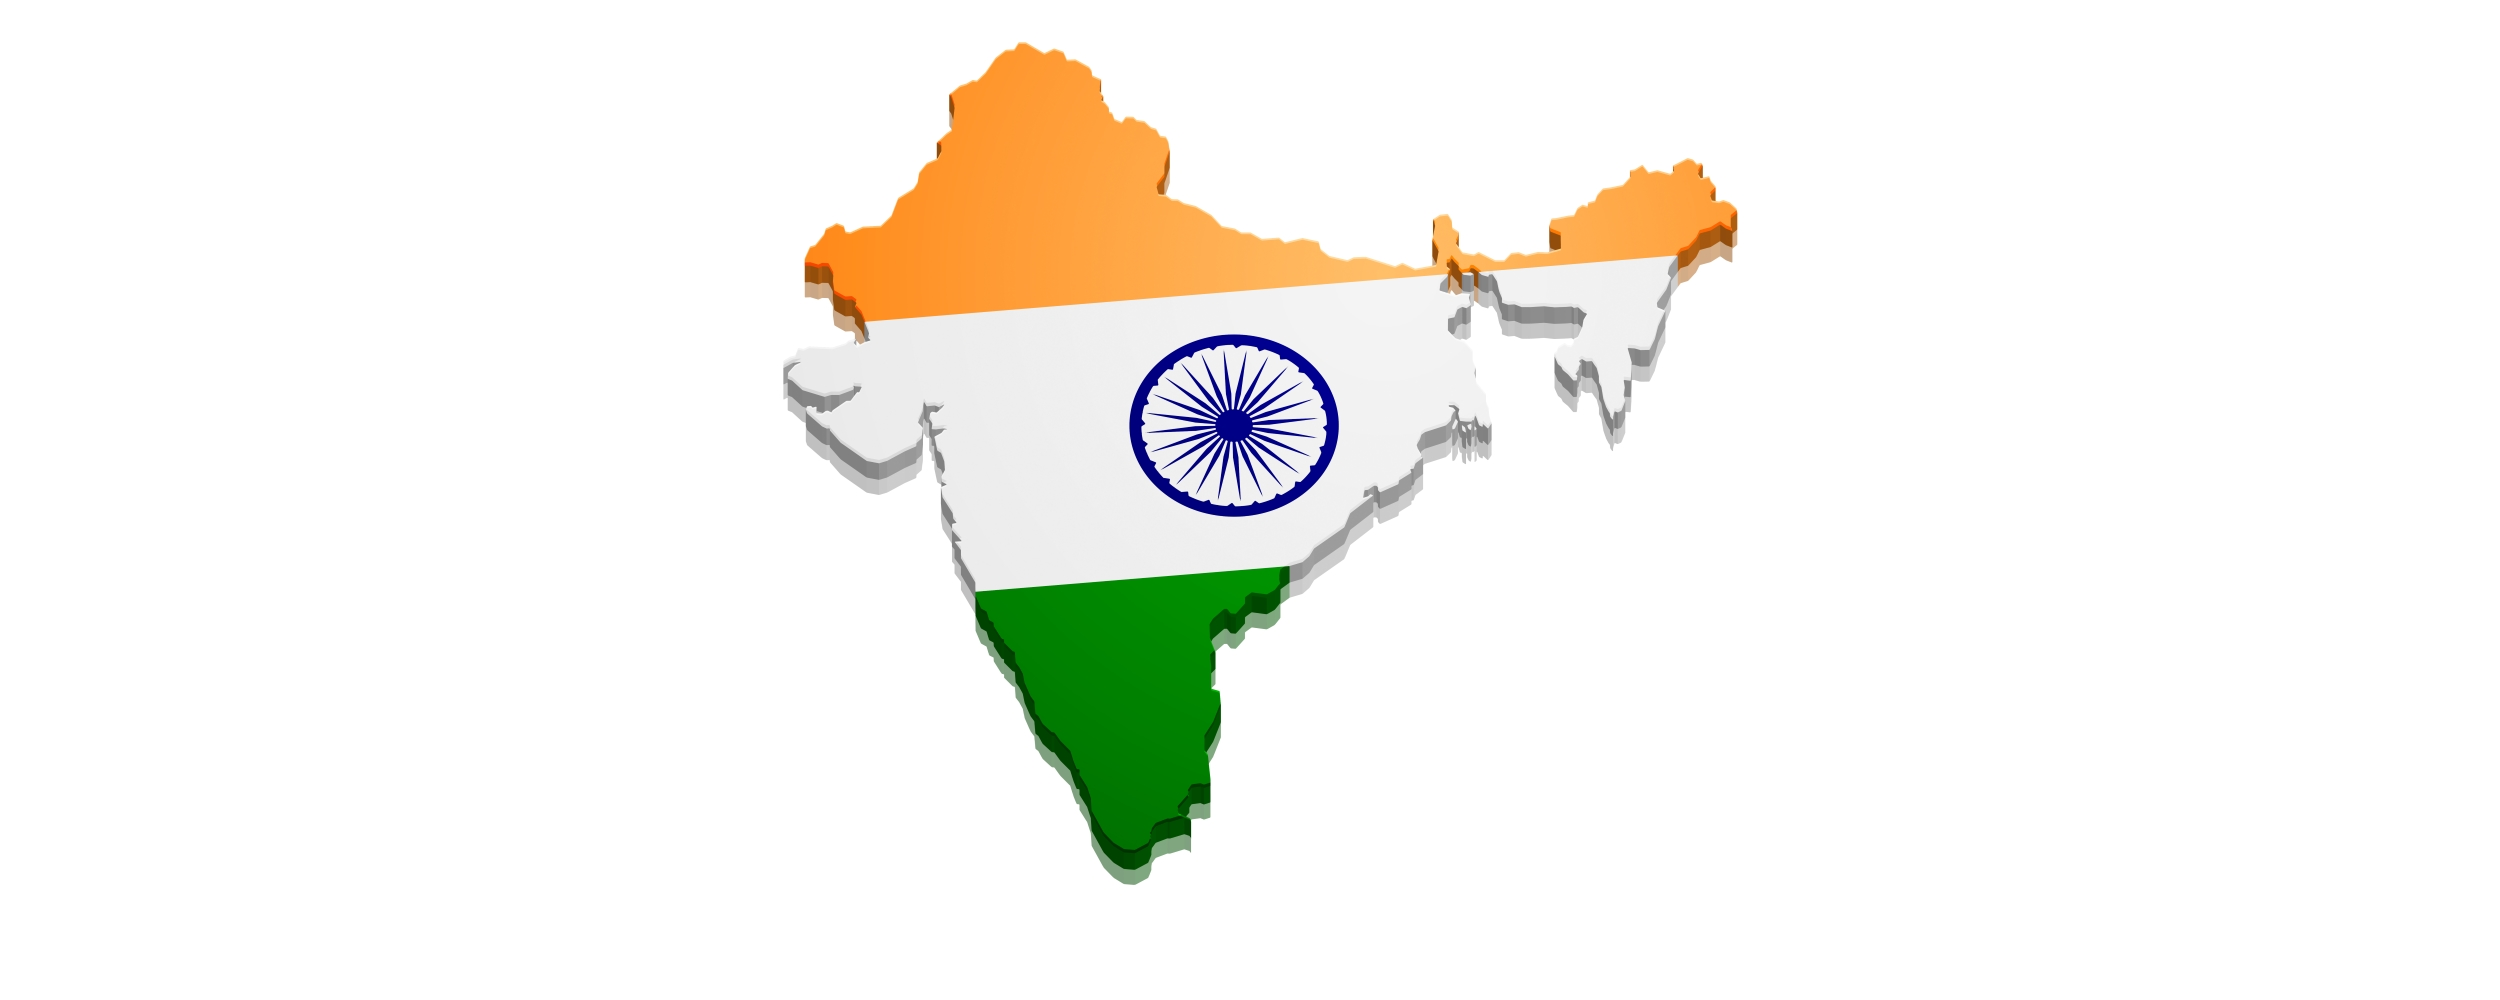 The Union Model of Indian Federalism